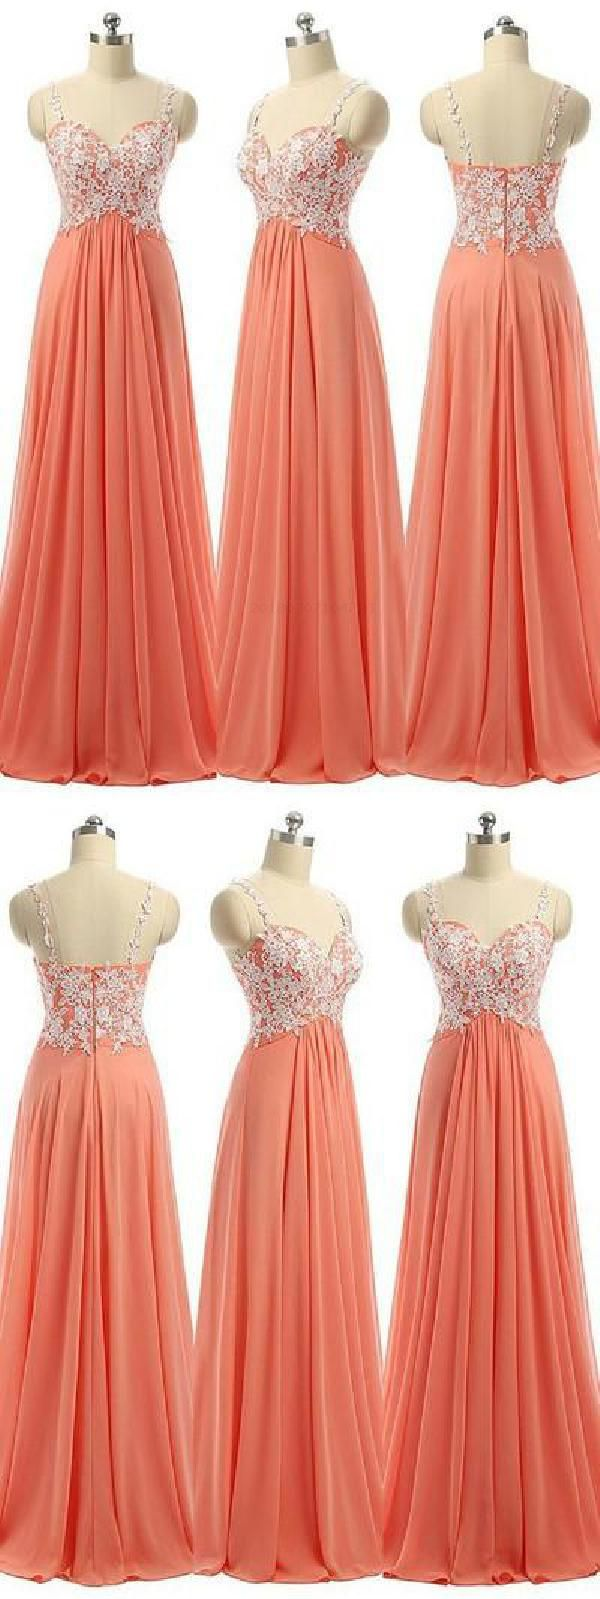 Outlet Light Prom Dresses Long Prom Dresses With Appliques in